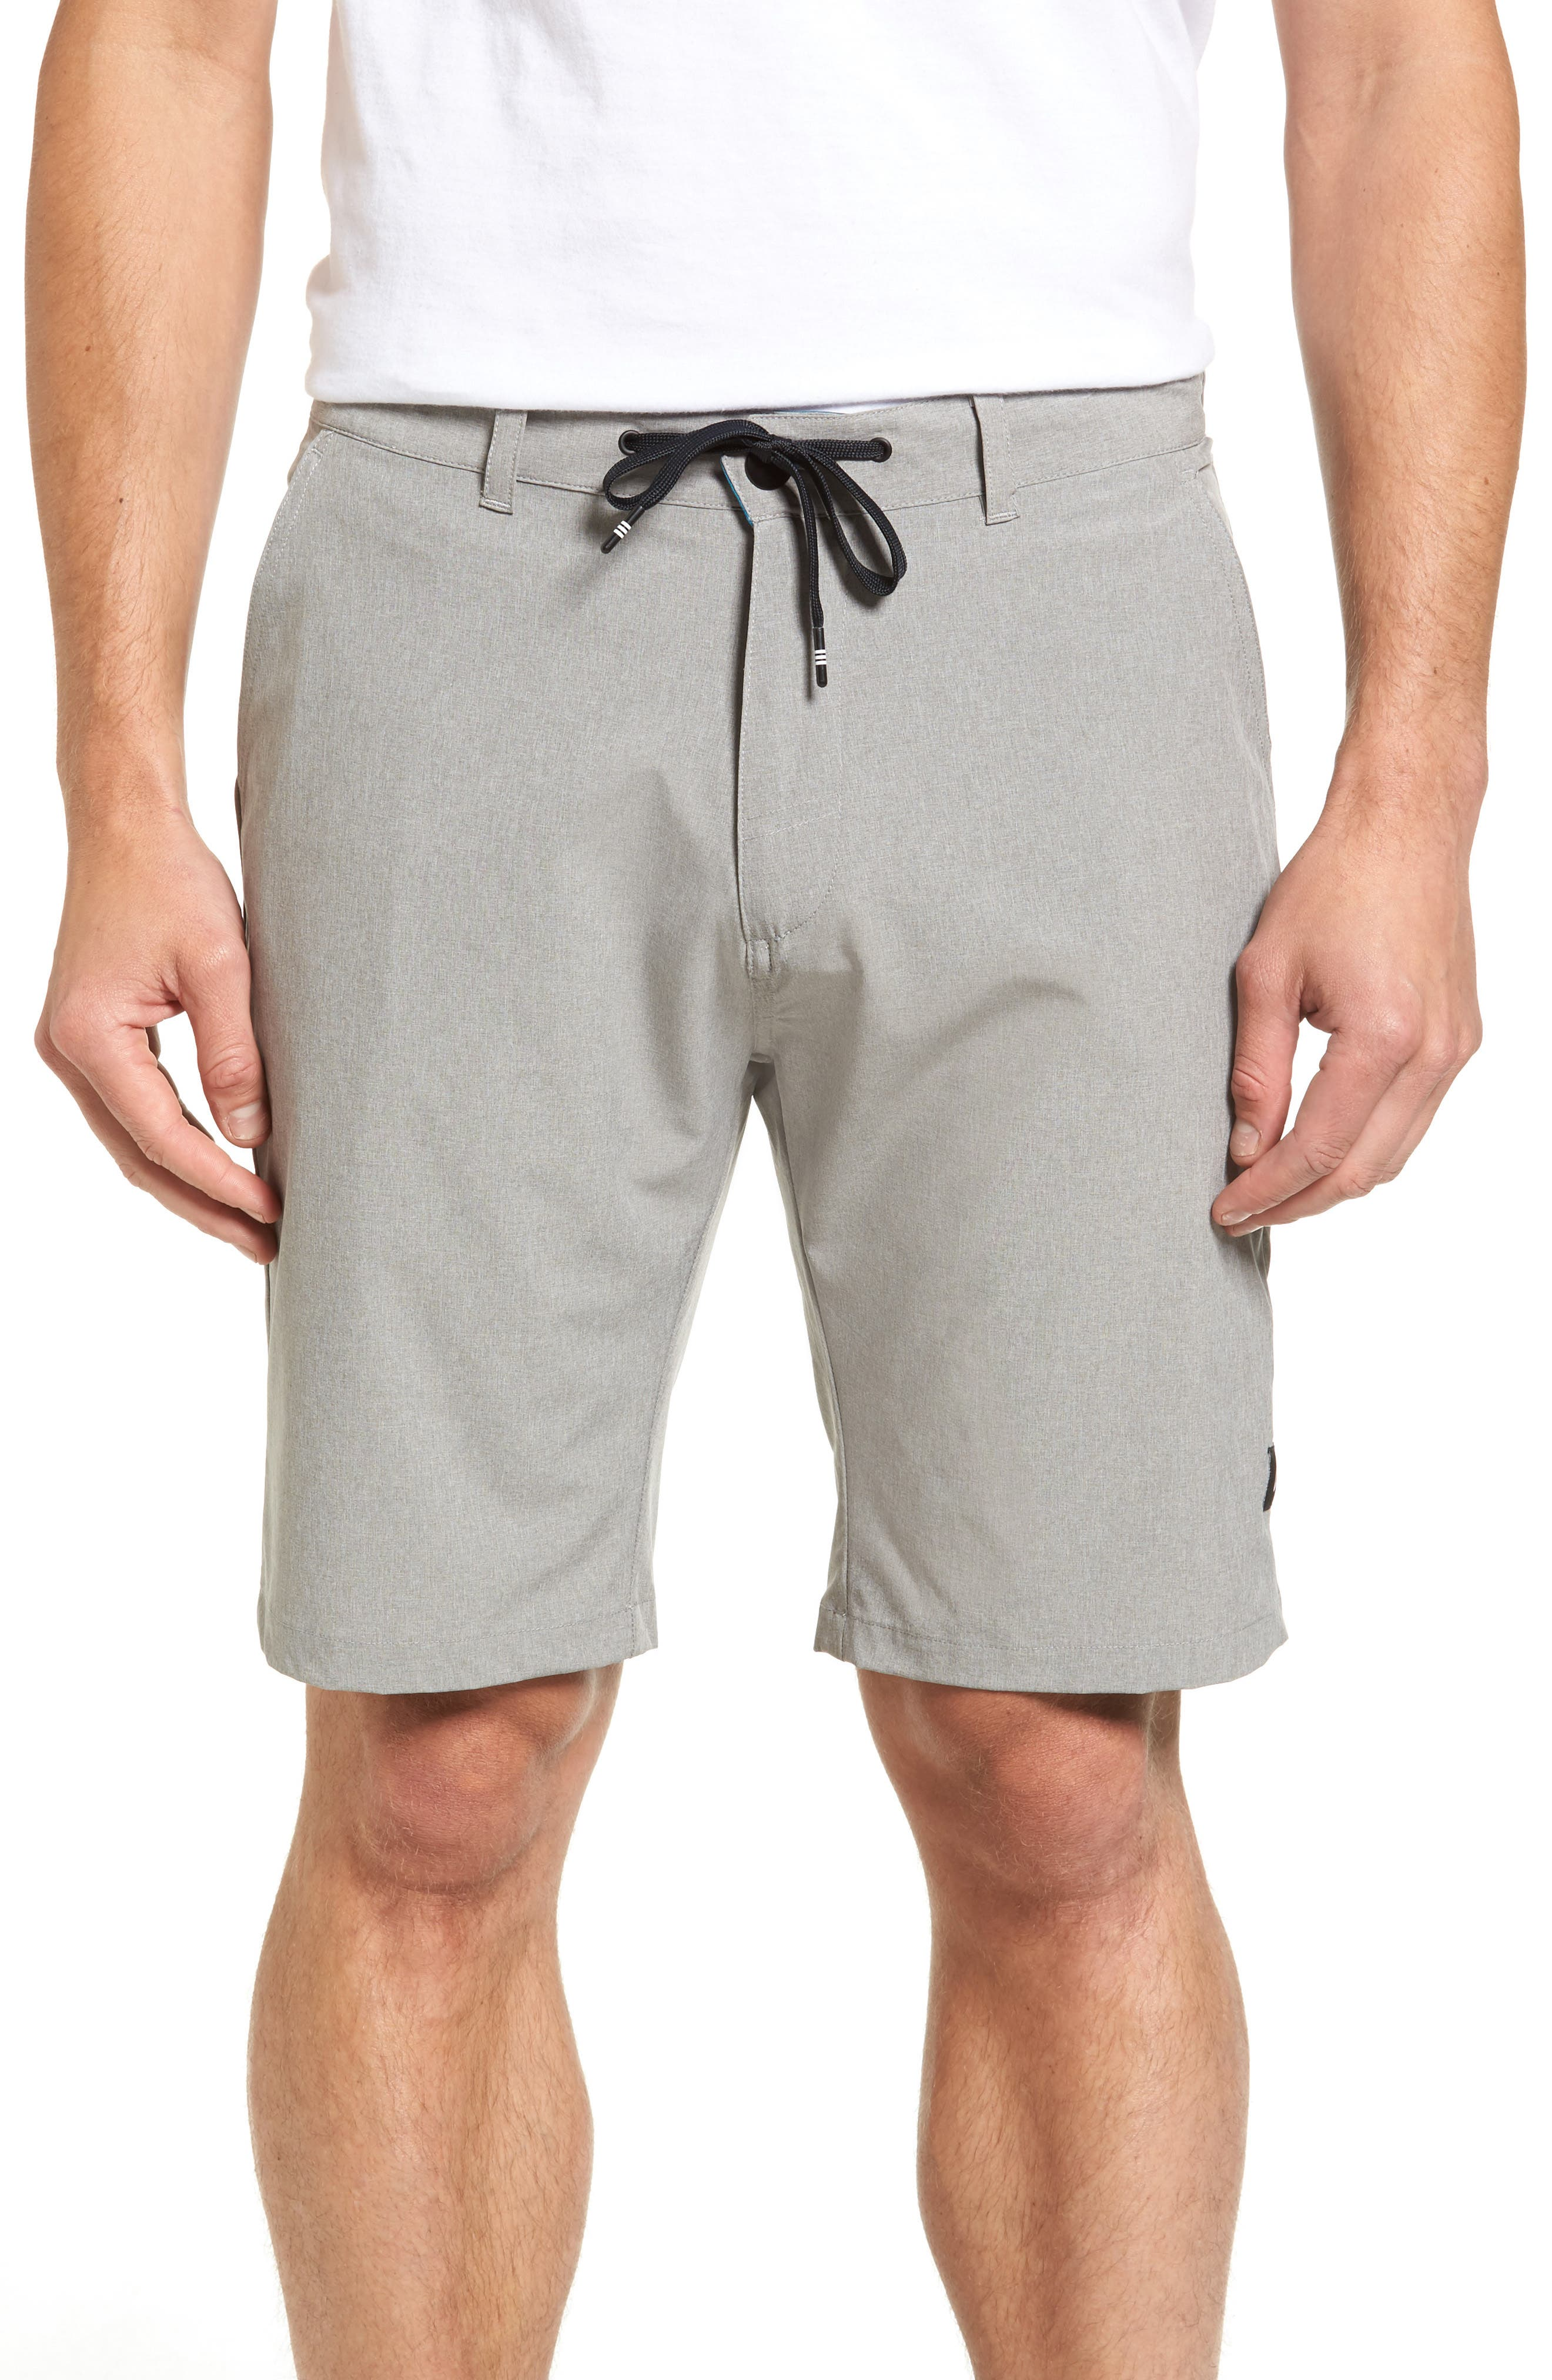 Freedom Carbon Cruiser Shorts,                         Main,                         color,